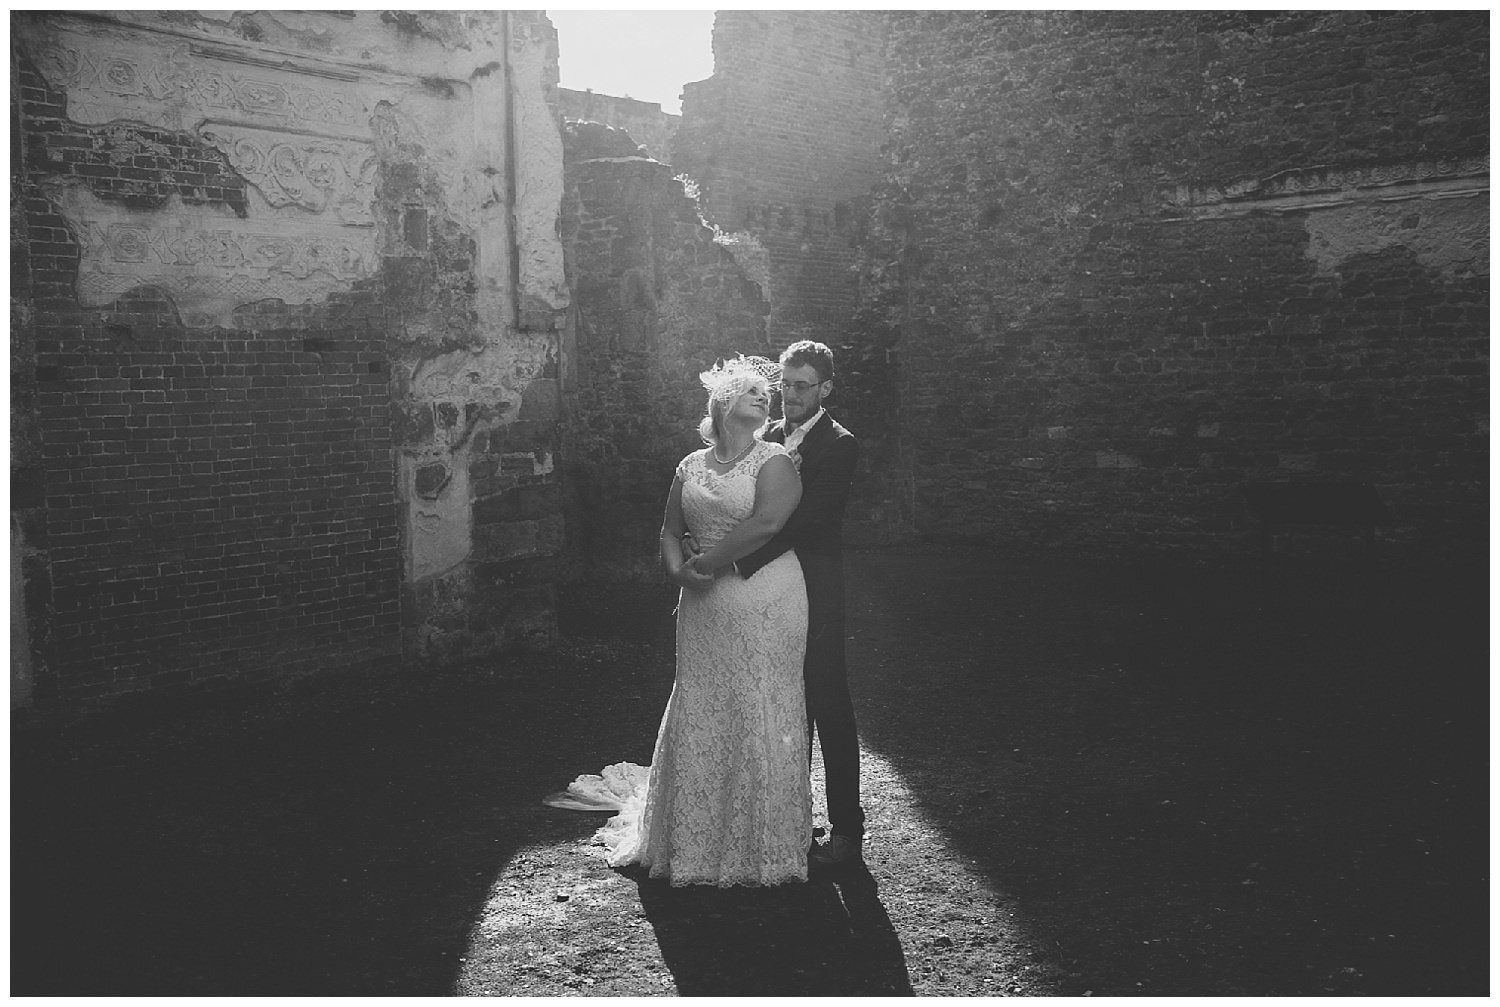 Wedding at the Walled Garden at Cowdray,Ashley Hamilton Photography,Ashley Thorne Photographer,Beaulieu Photography,East Boldre Photography,Engineering,Hampshire Wedding Photographer,London Bride,London Wedding,New Forest Engagement Photography,New Forest Wedding Photographer,Southampton wedding photographer,UK wedding photographer,bride,couples,cowdray ruins,cowdray ruins wedding,groom,midhurst,the walled garden,the walled garden wedding,wedding photography,wedding portraits,